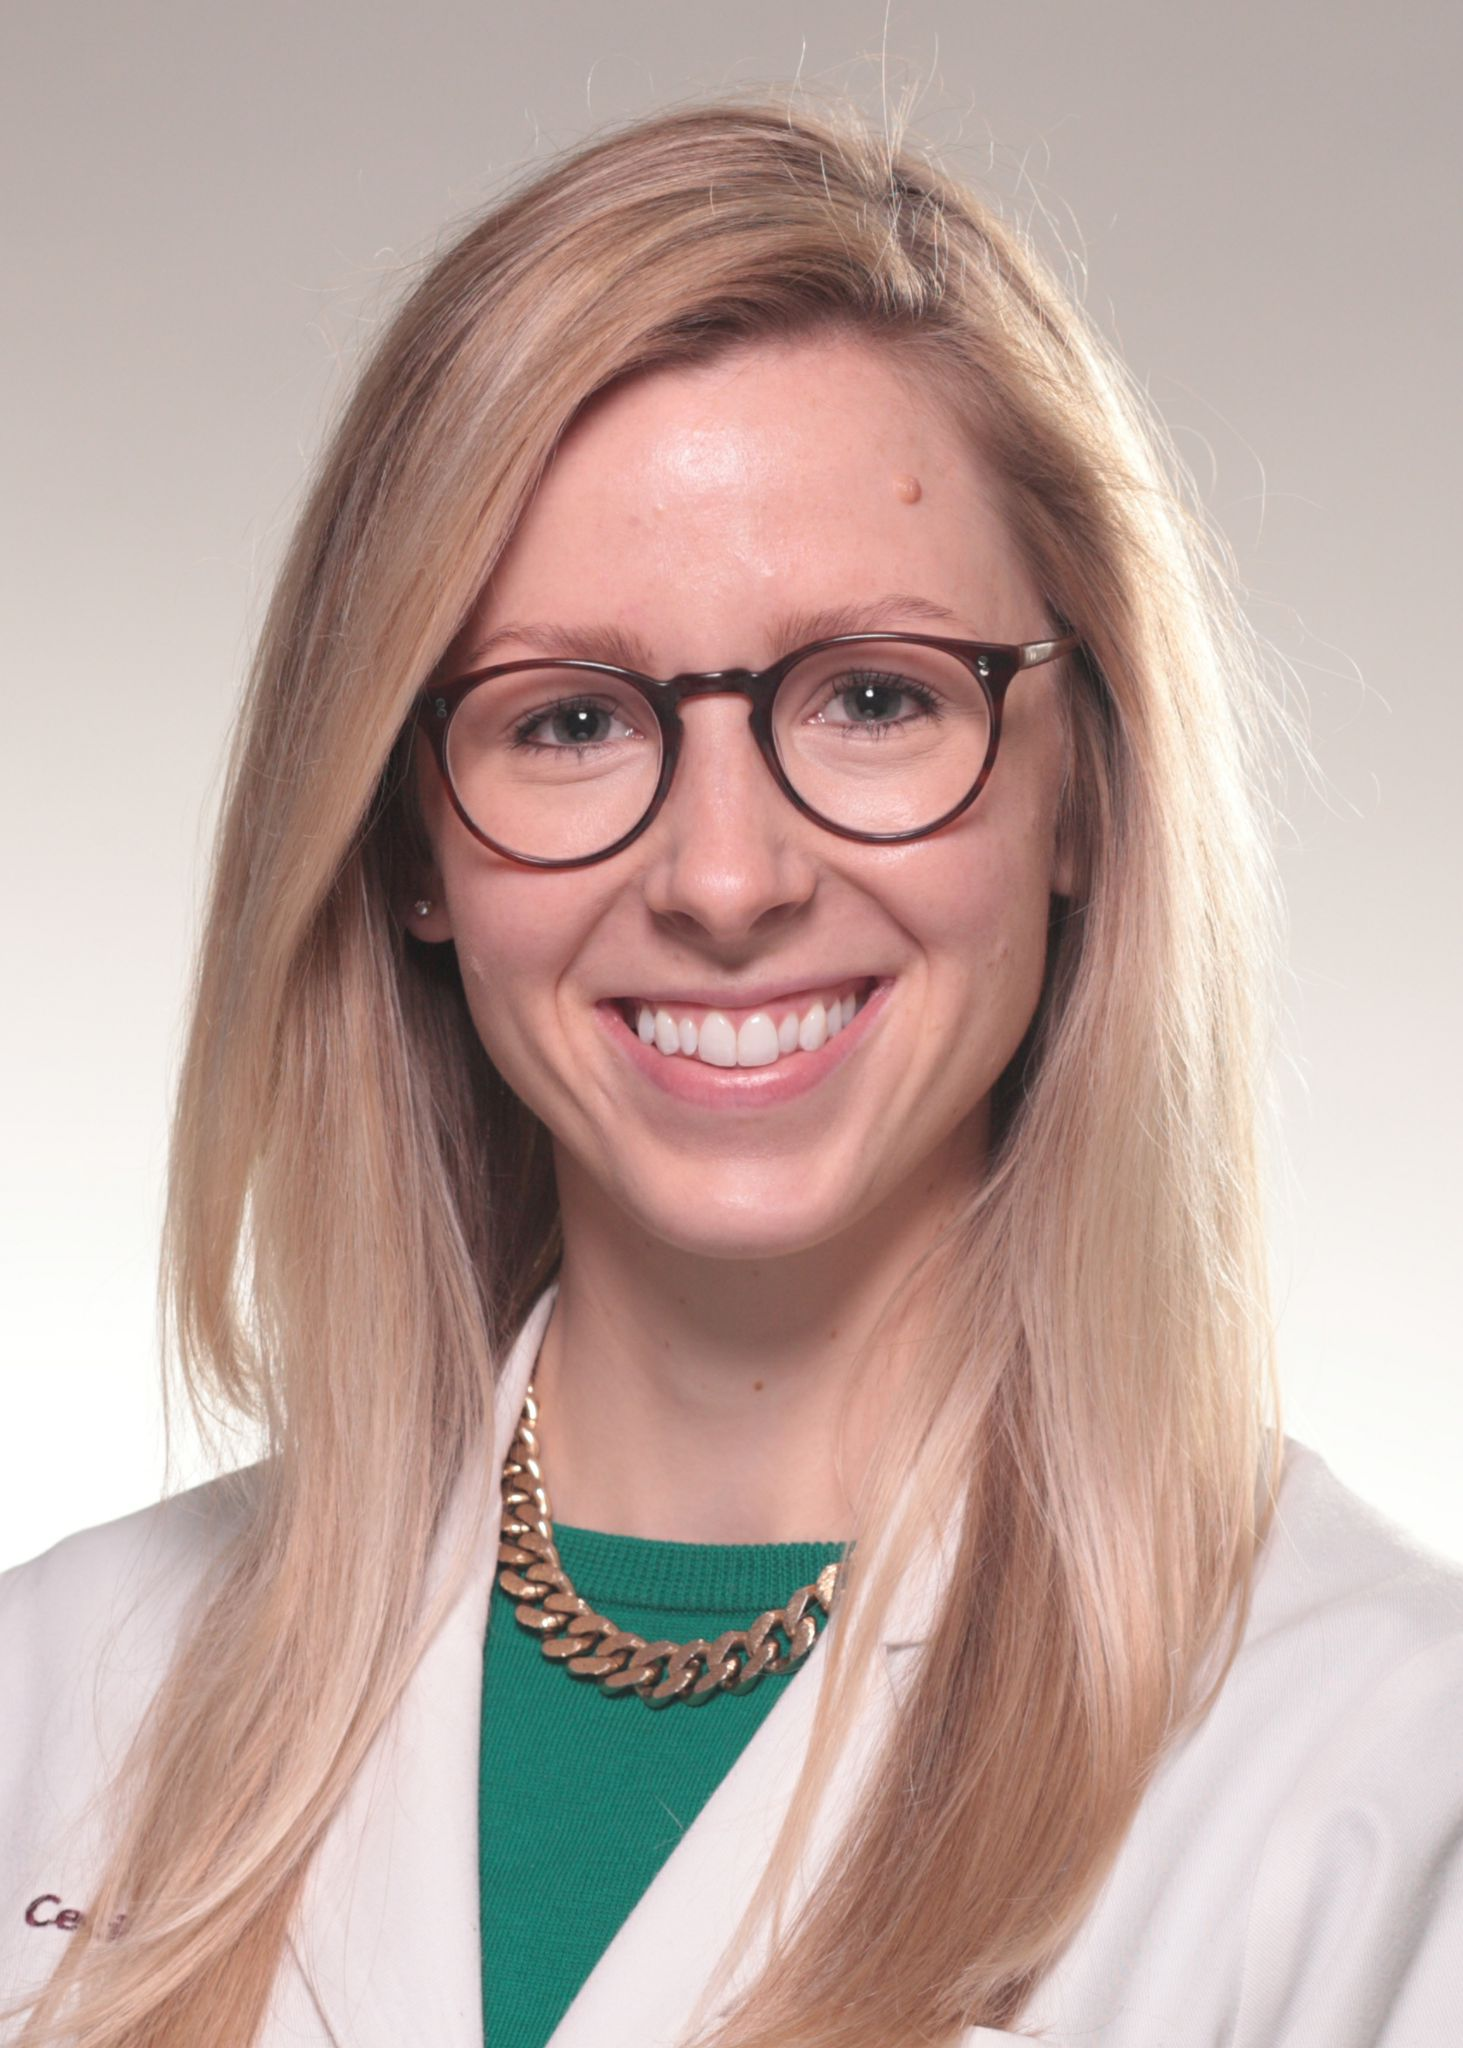 Cecilia Benz, M.D., received her Doctor of Medicine degree, and also a graduate certificate in Advanced International Affairs from the Bush School of Government and Public Service at Texas A&M University.